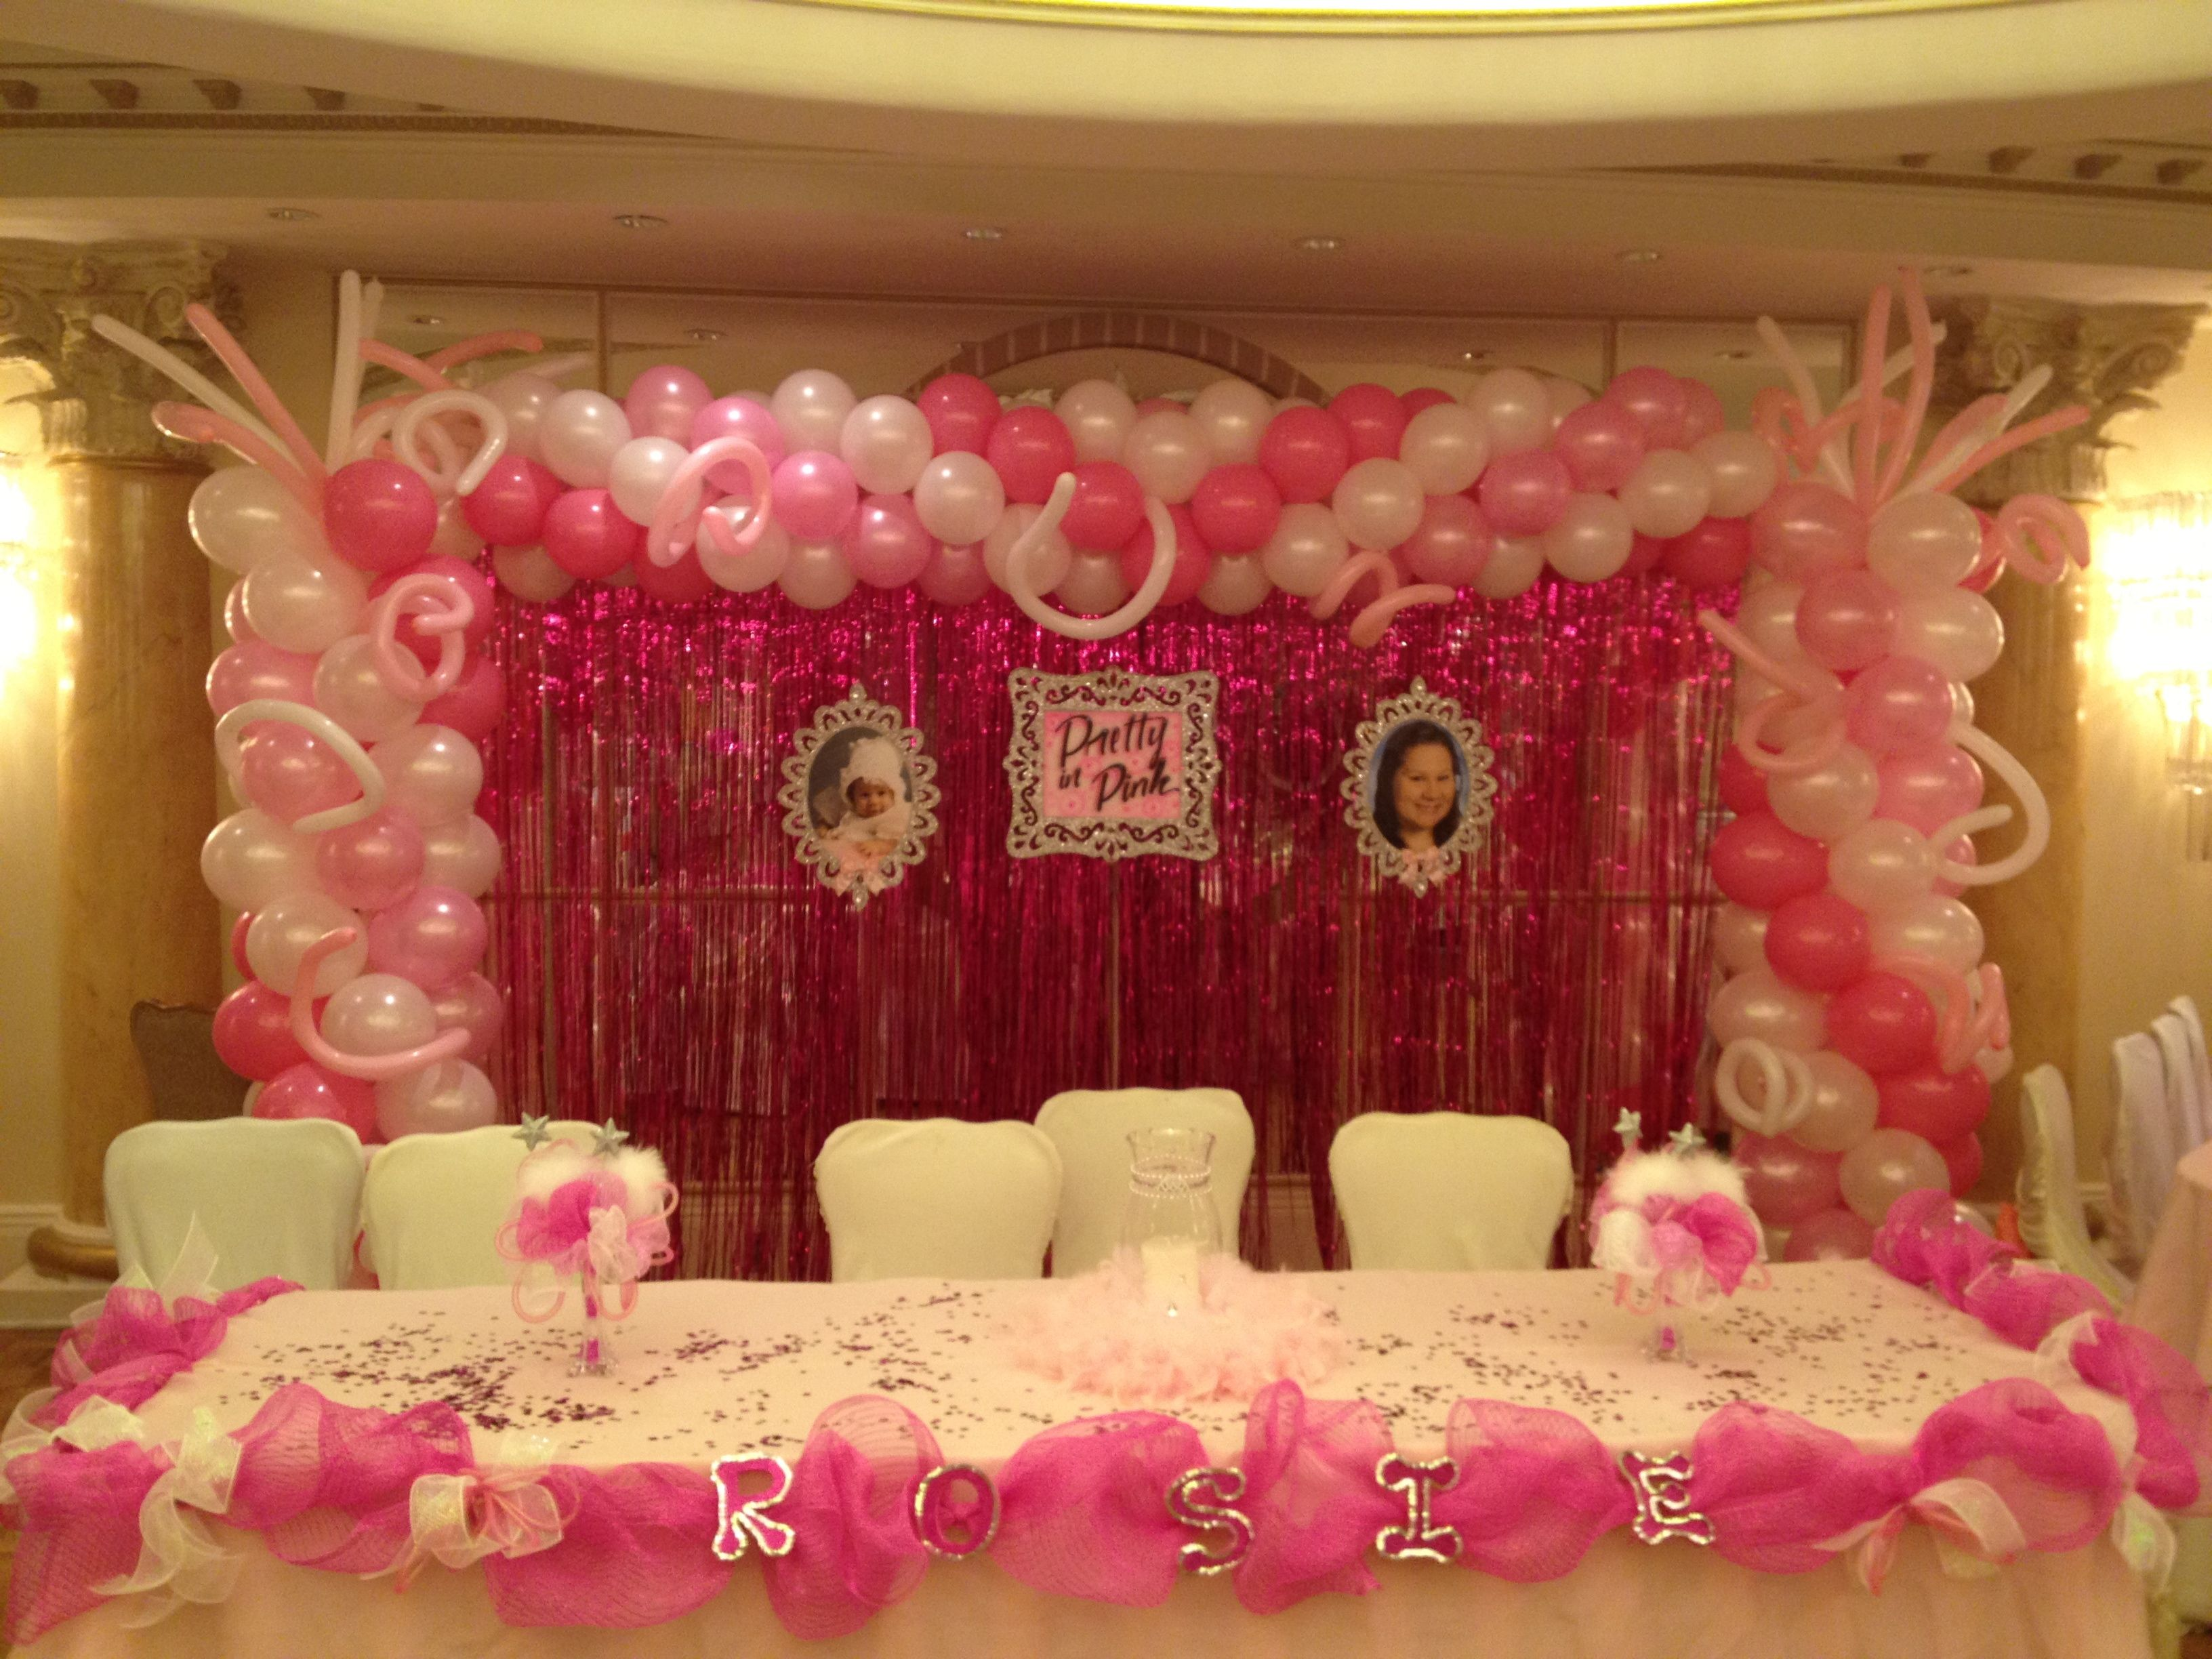 Sener table ideas balloon decor decoratoins in nj new for Balloon decoration ideas for quinceaneras